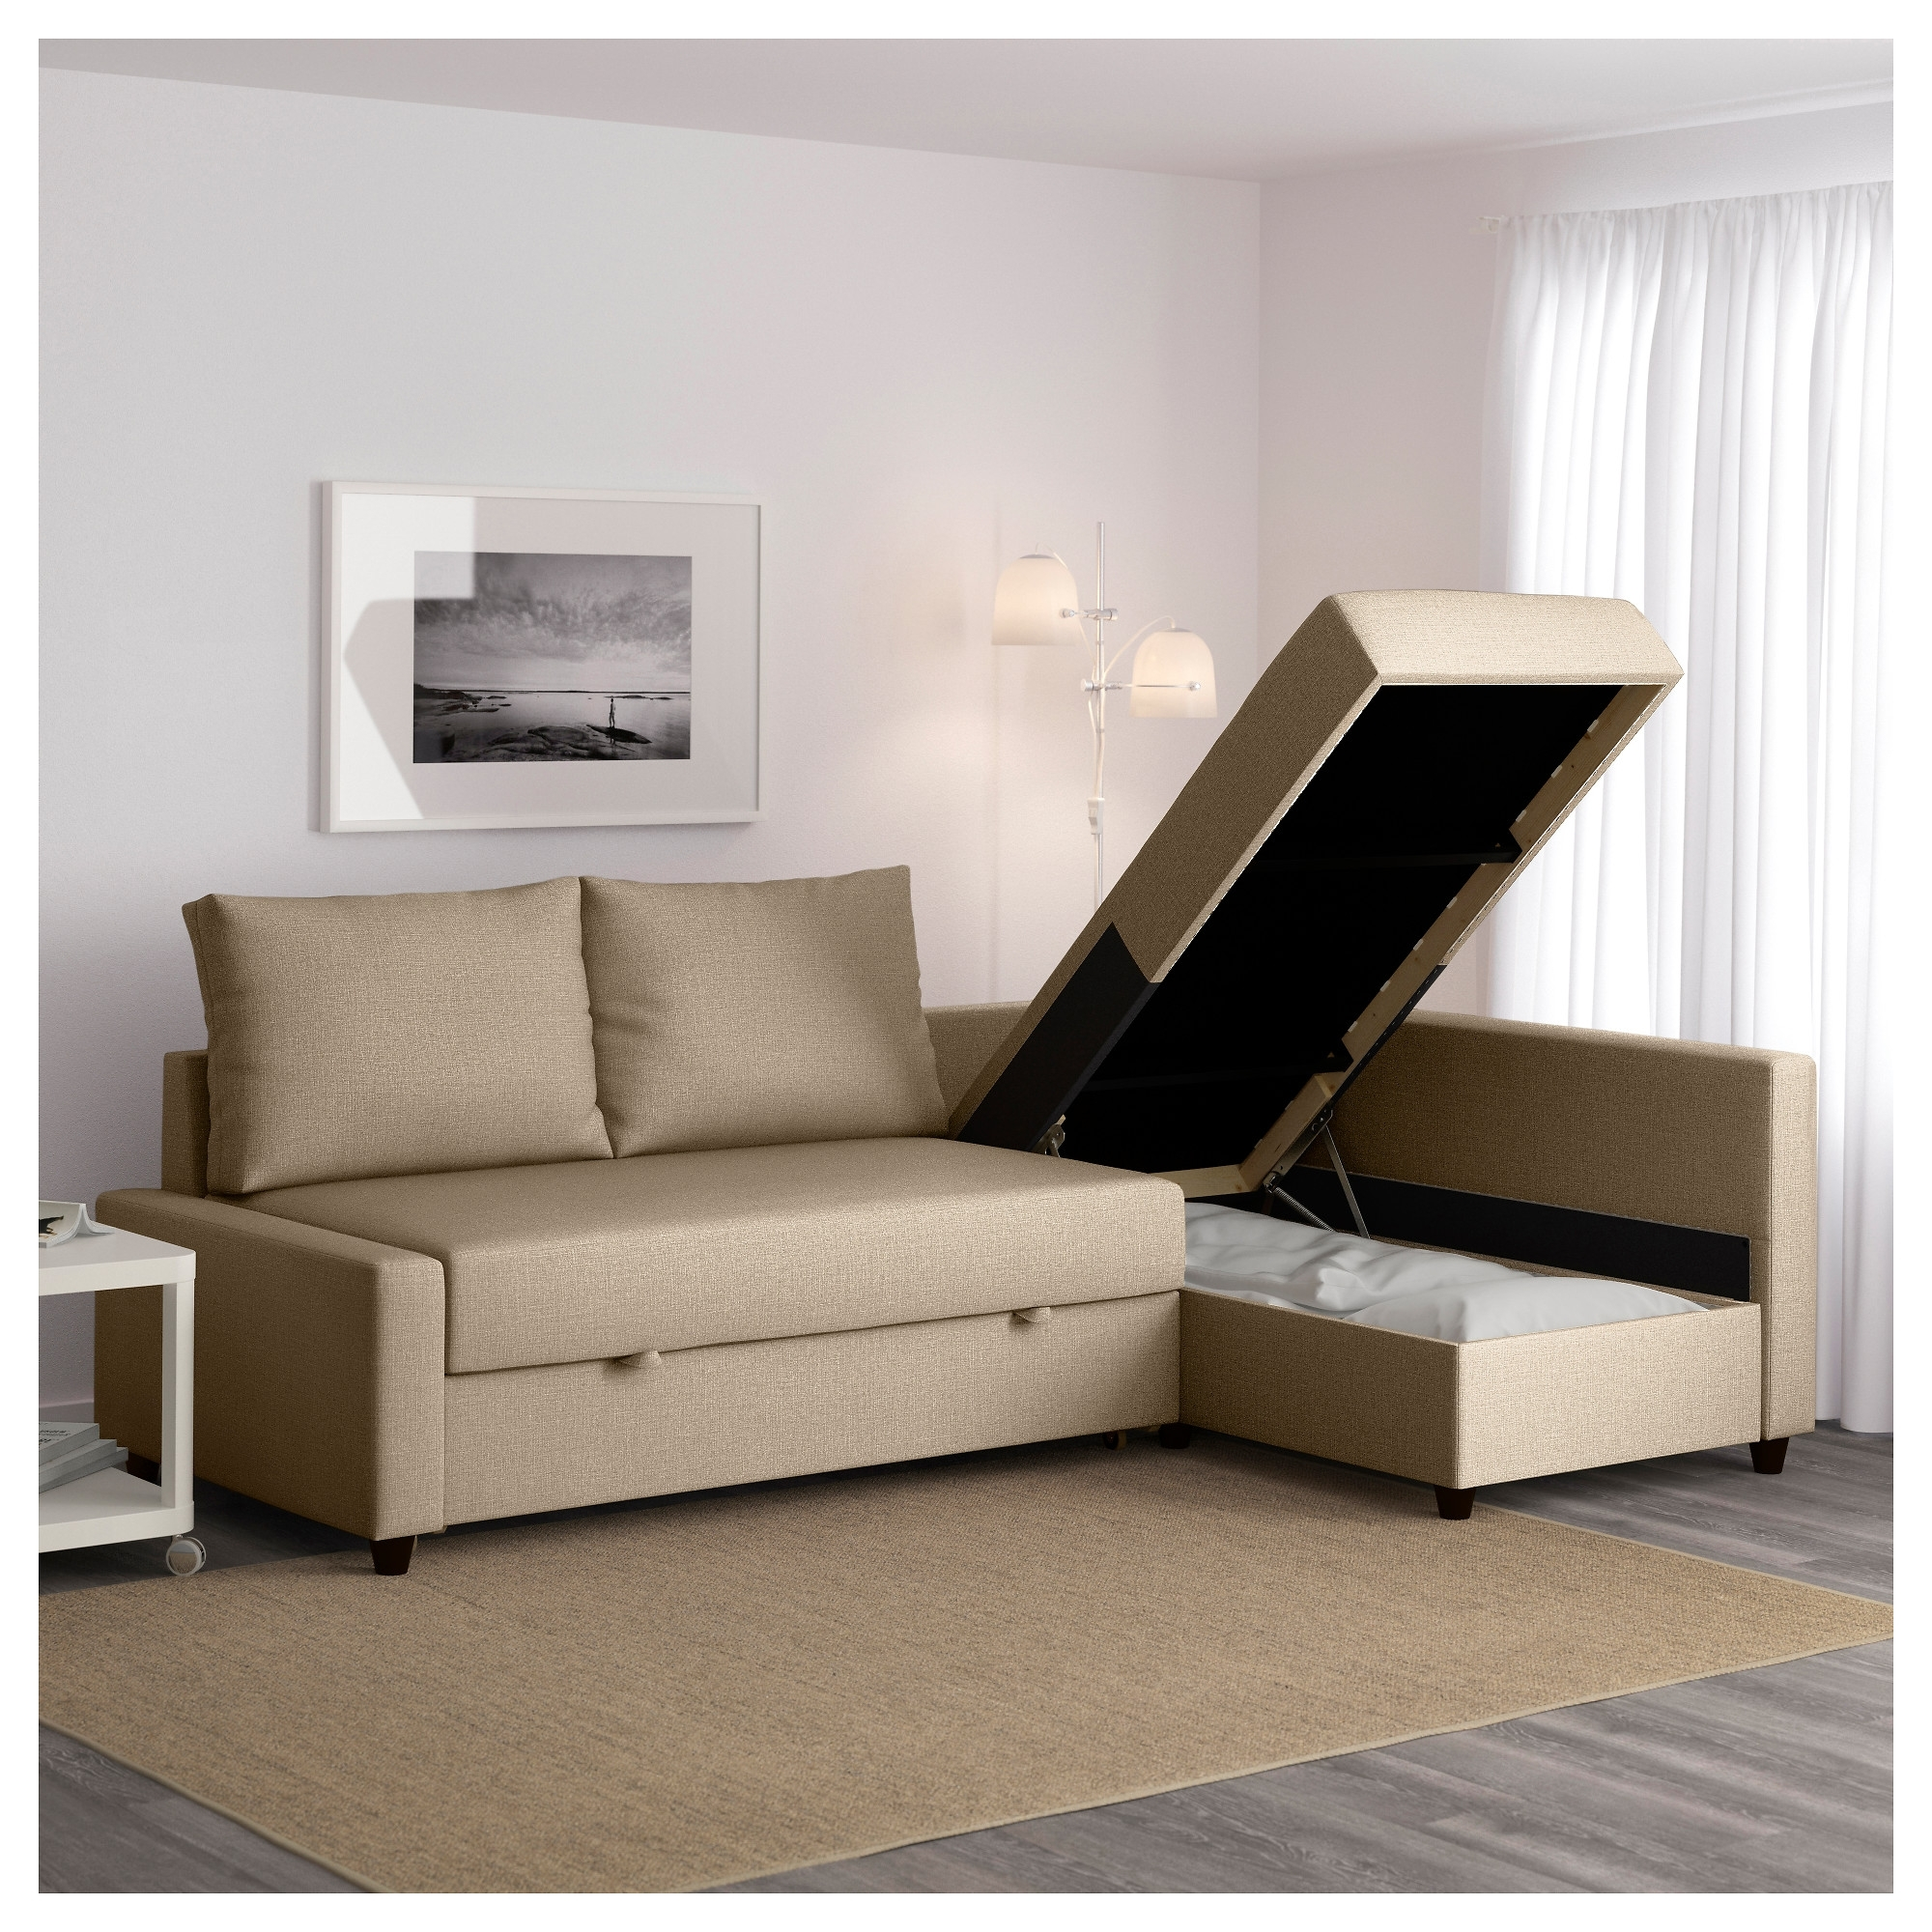 Sectional Sofas With Storage In Newest Friheten Sleeper Sectional,3 Seat W/storage – Skiftebo Dark Gray (View 8 of 20)